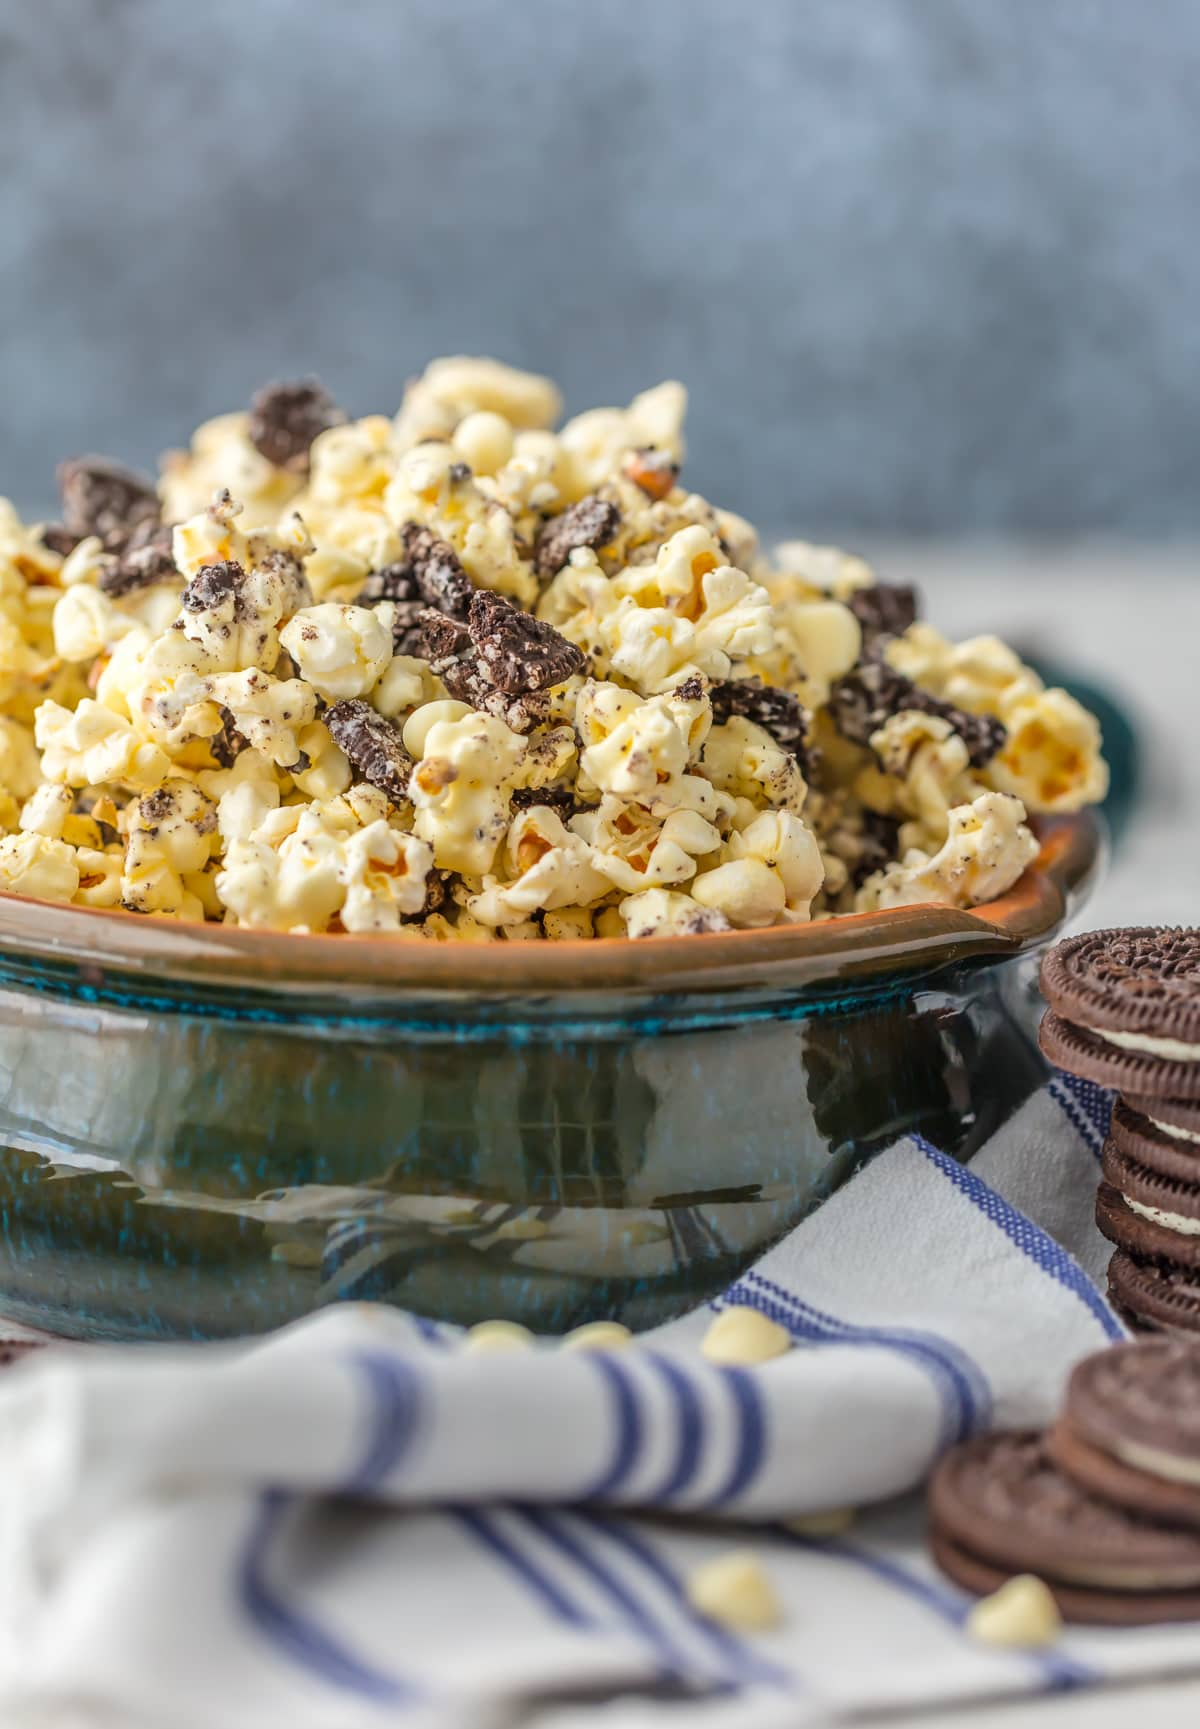 Sweet popcorn recipe with cookies and chocolate